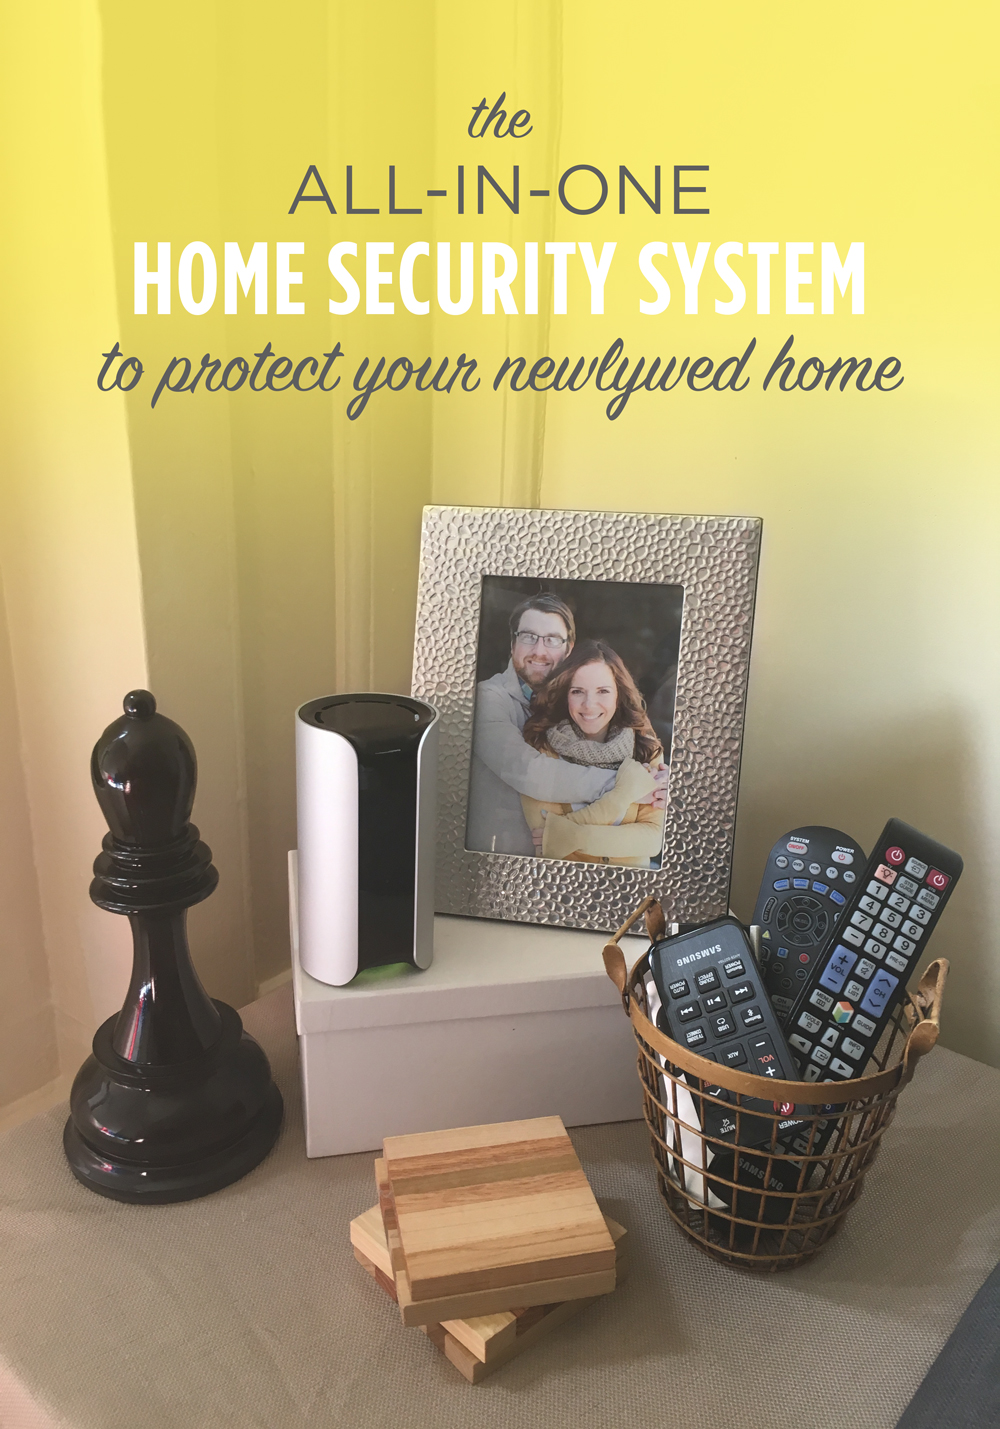 Canary Home Security System - the perfect device to protect your newlywed home!